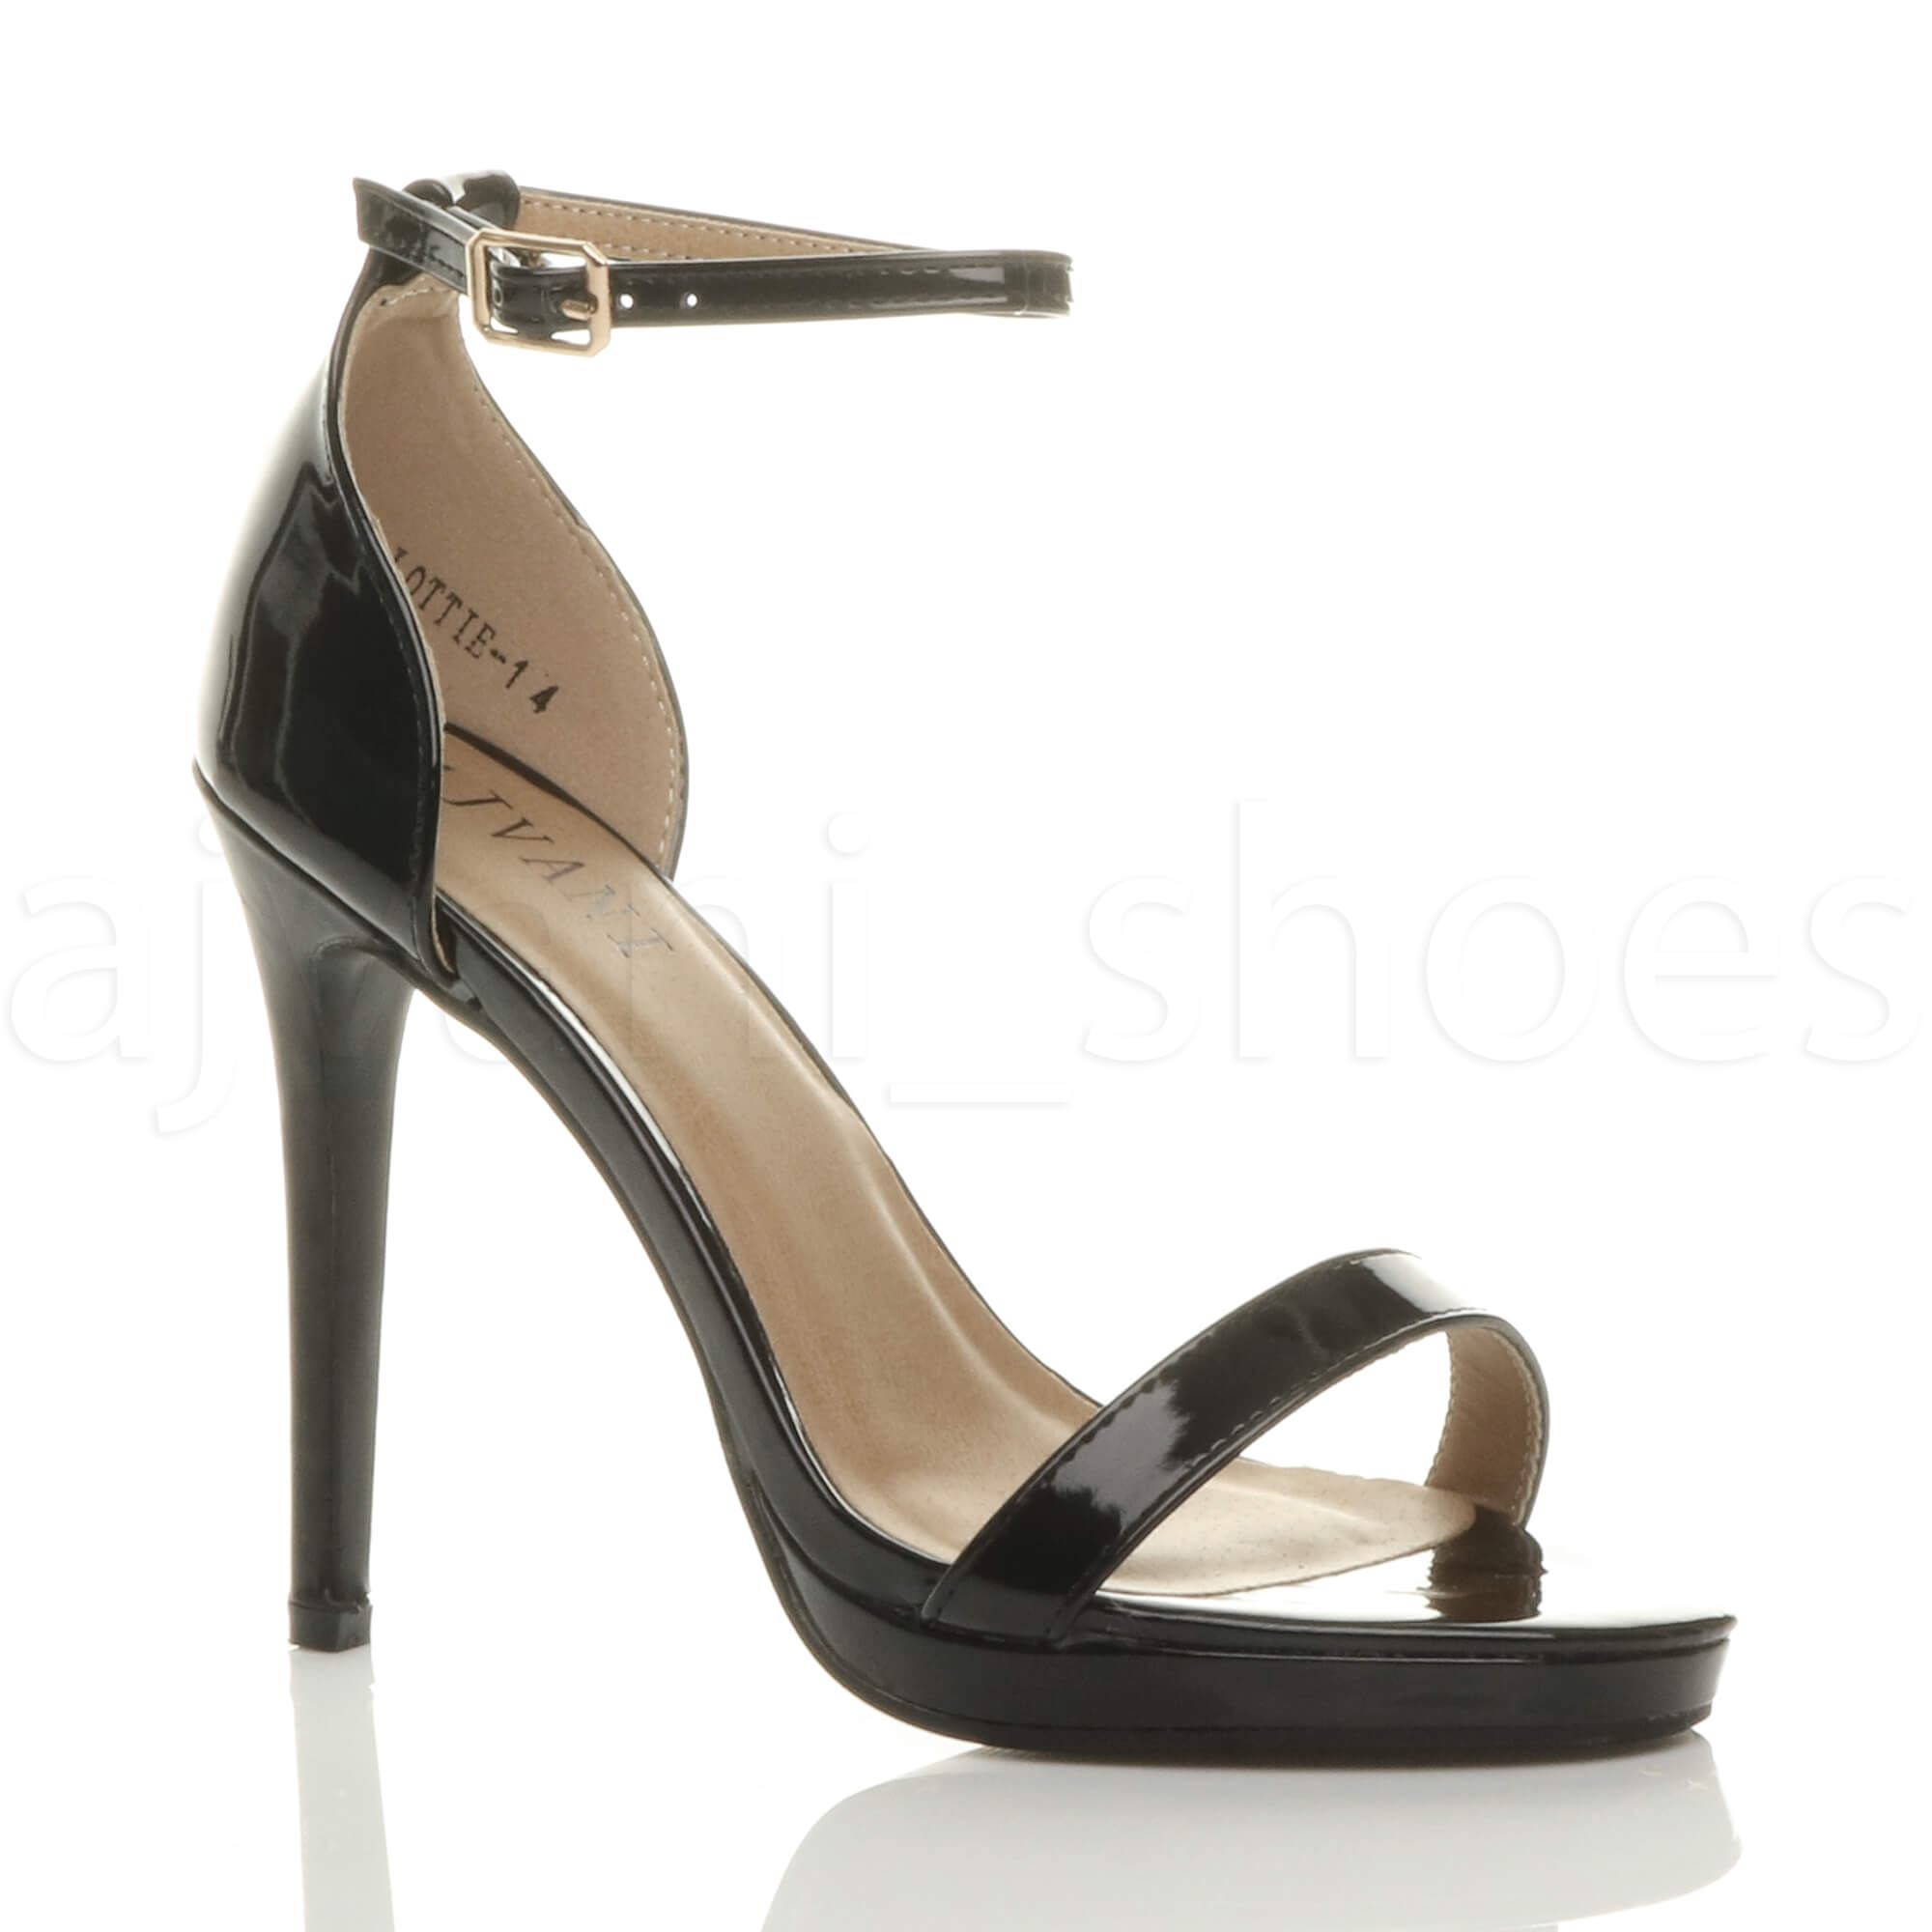 WOMENS-LADIES-HIGH-HEEL-PEEP-TOE-BARELY-THERE-ANKLE-STRAP-BUCKLE-SANDALS-SIZE thumbnail 15